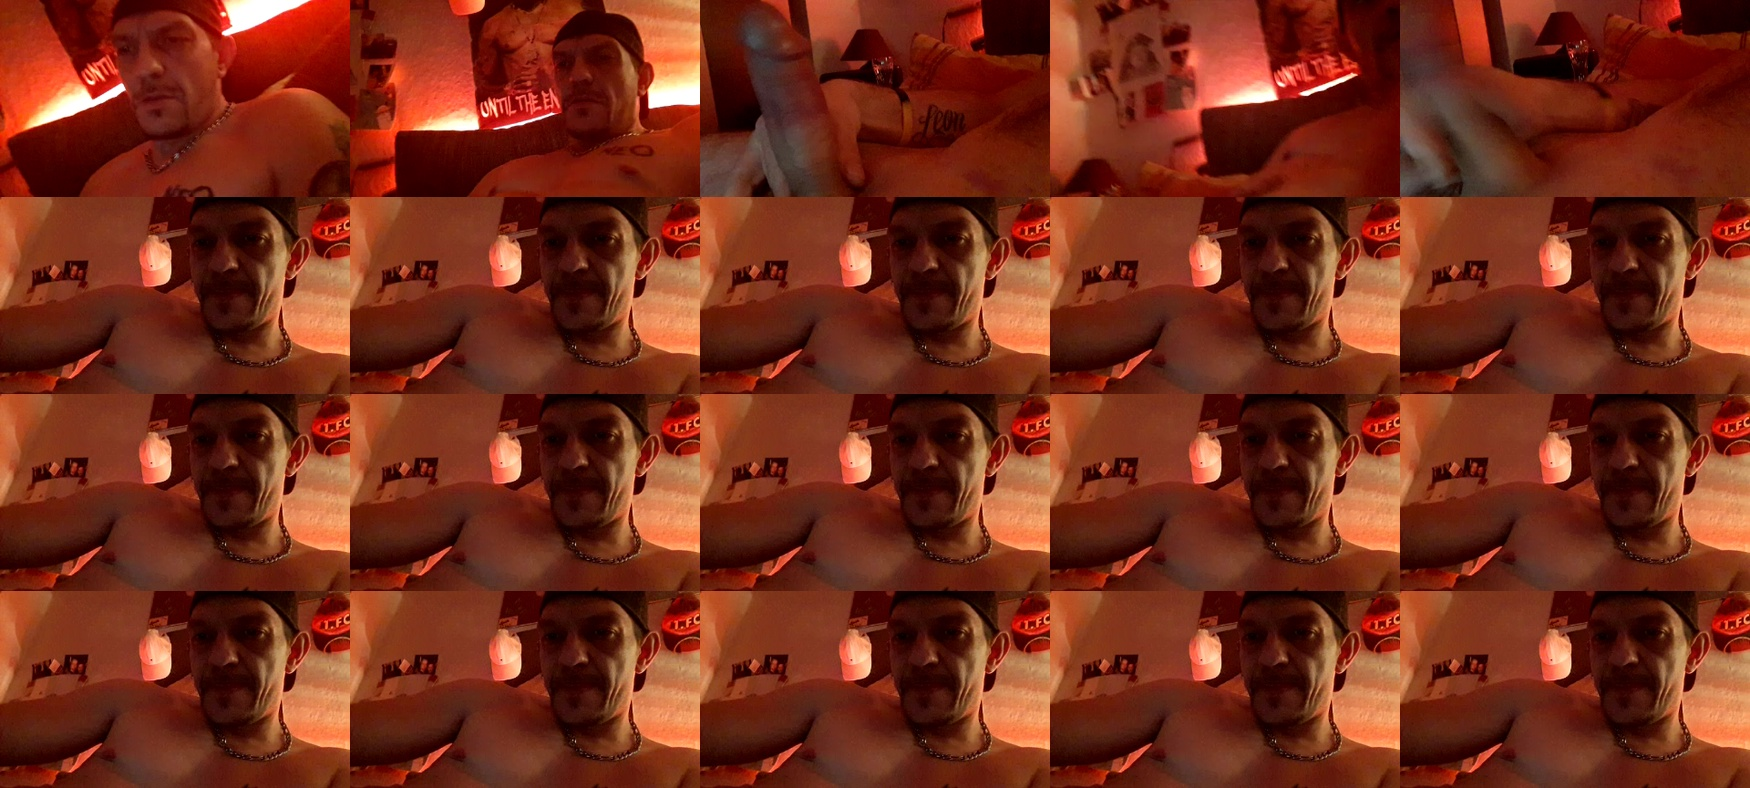 TommyHard81 Nude CAM SHOW @ Cam4 21-07-2021